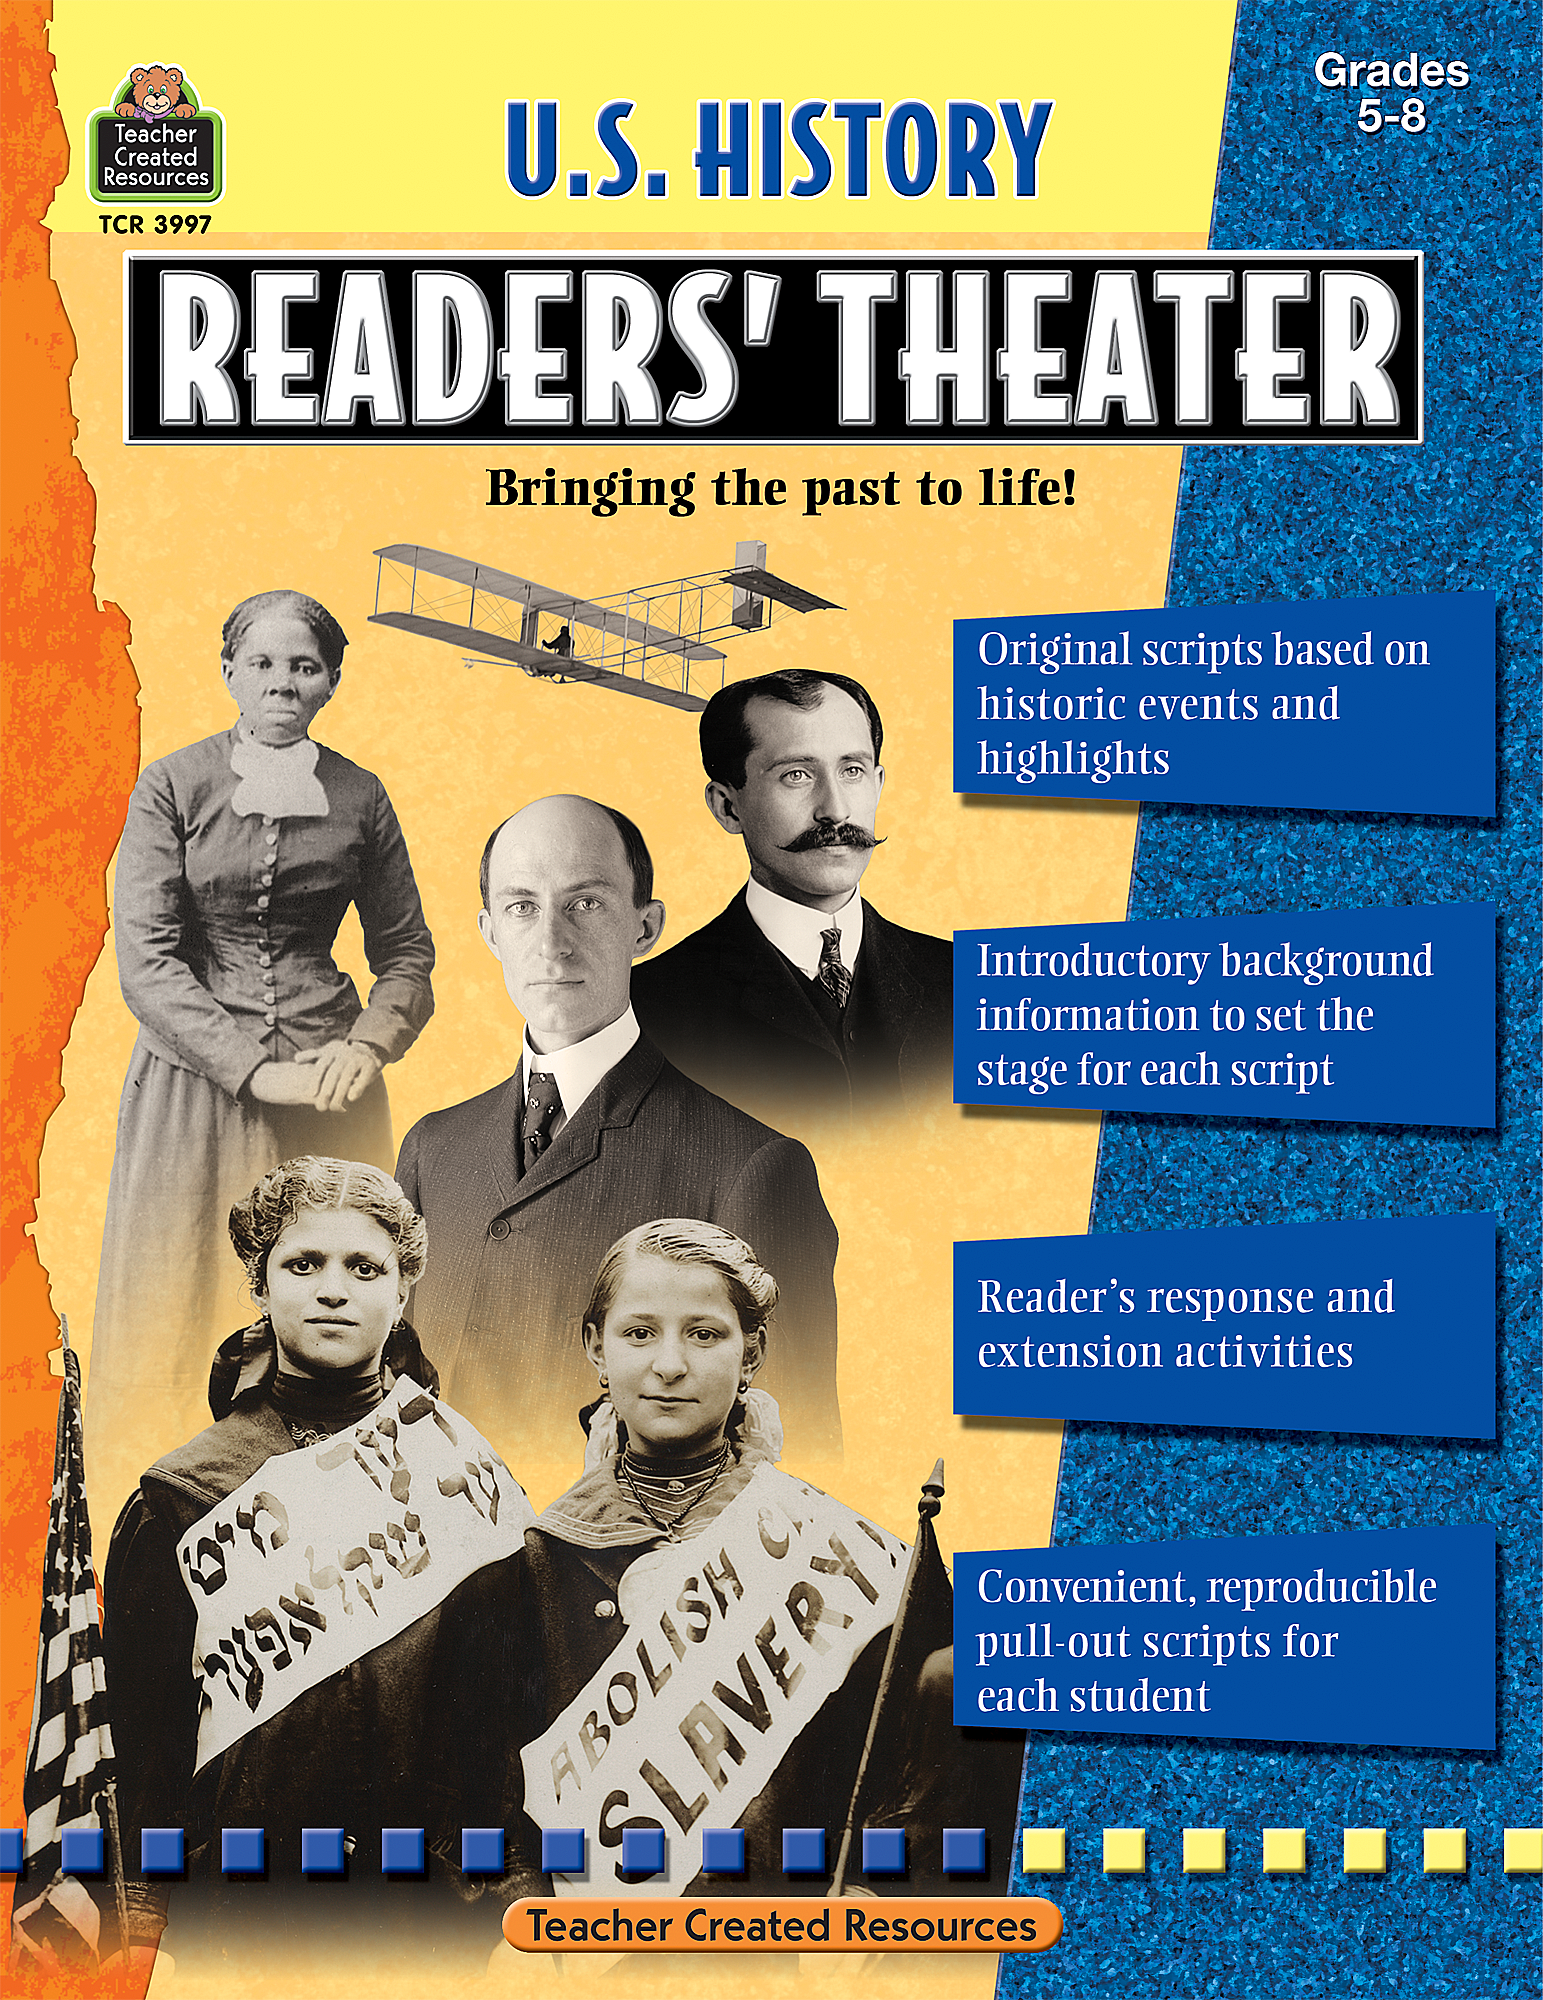 5th Grade History Questions: US History Readers' Theater Grade 5-8 - TCR3997